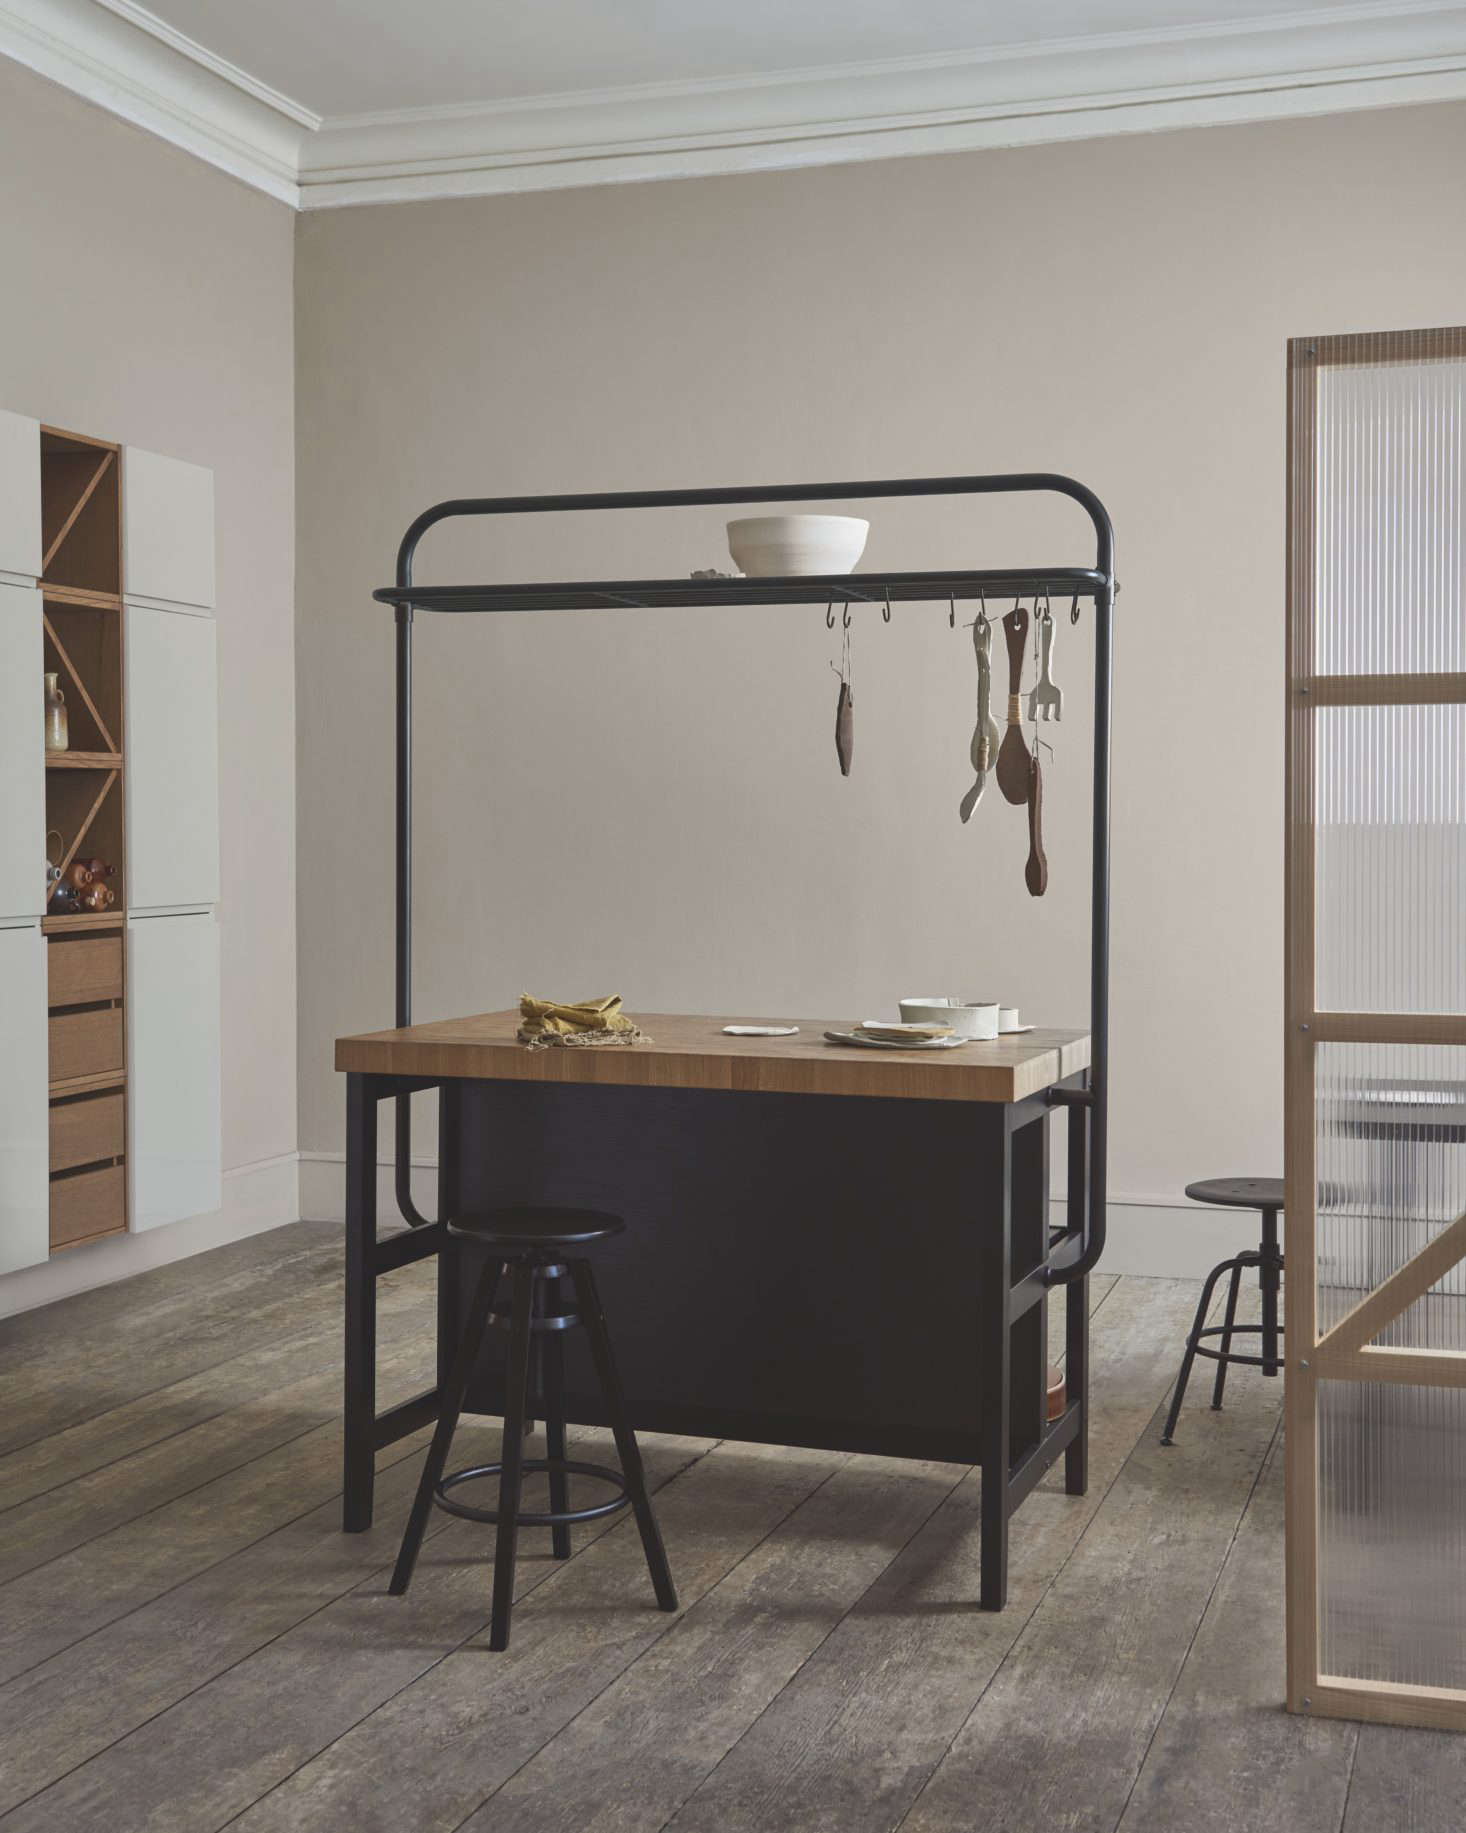 Ikeas vadholma kitchen island